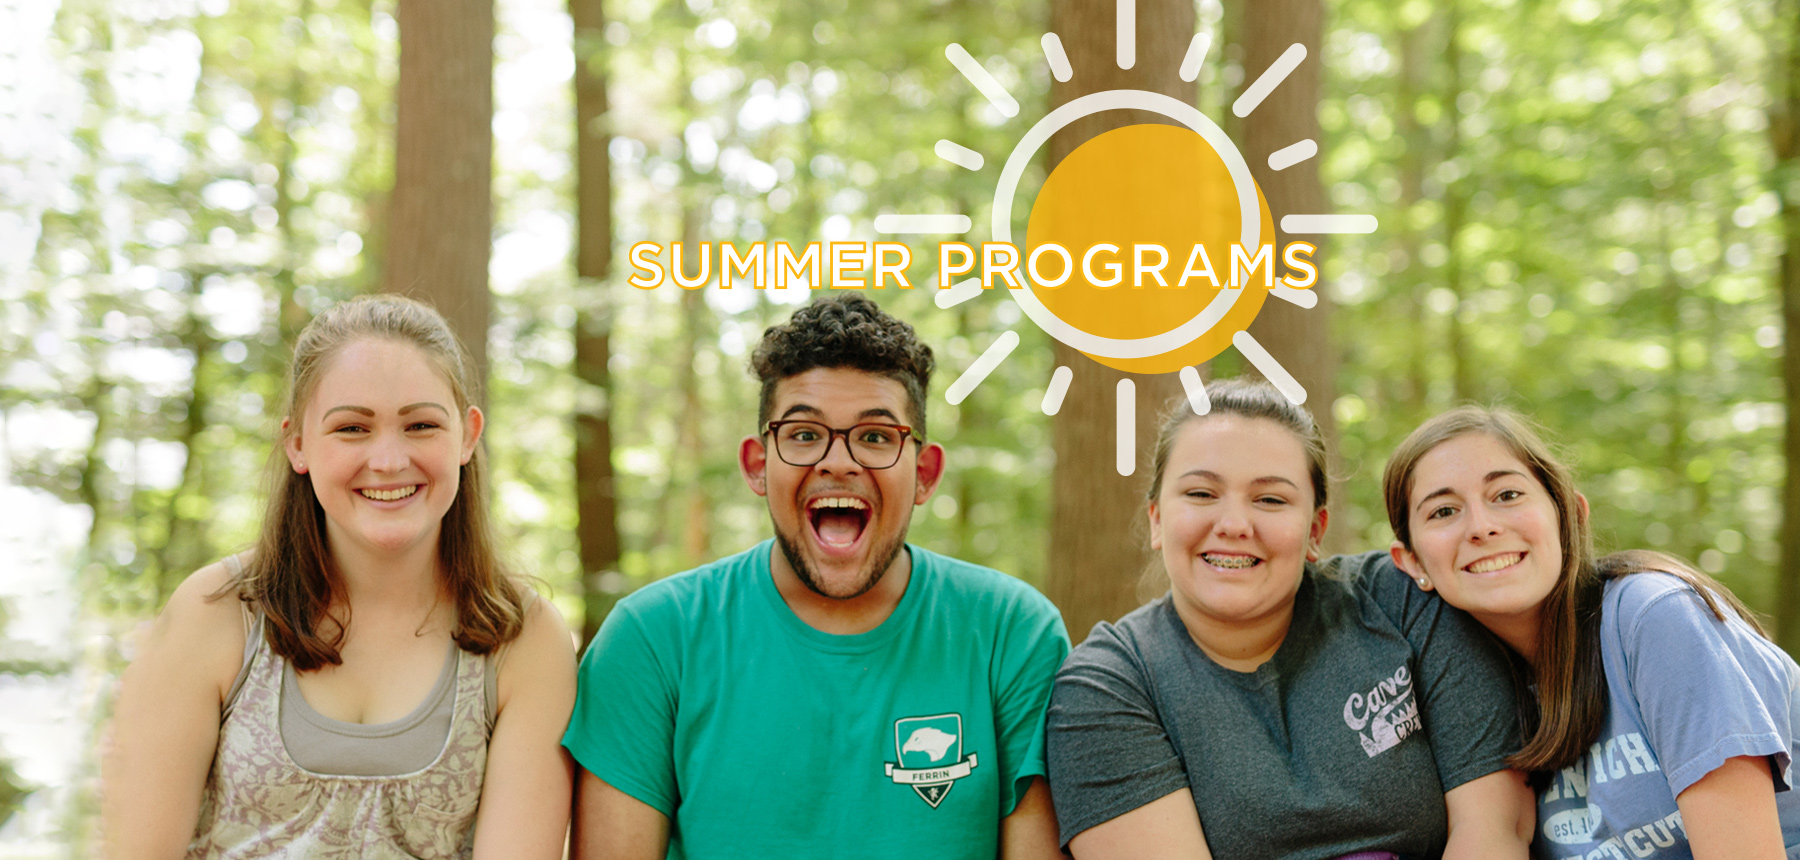 Summer Programs students